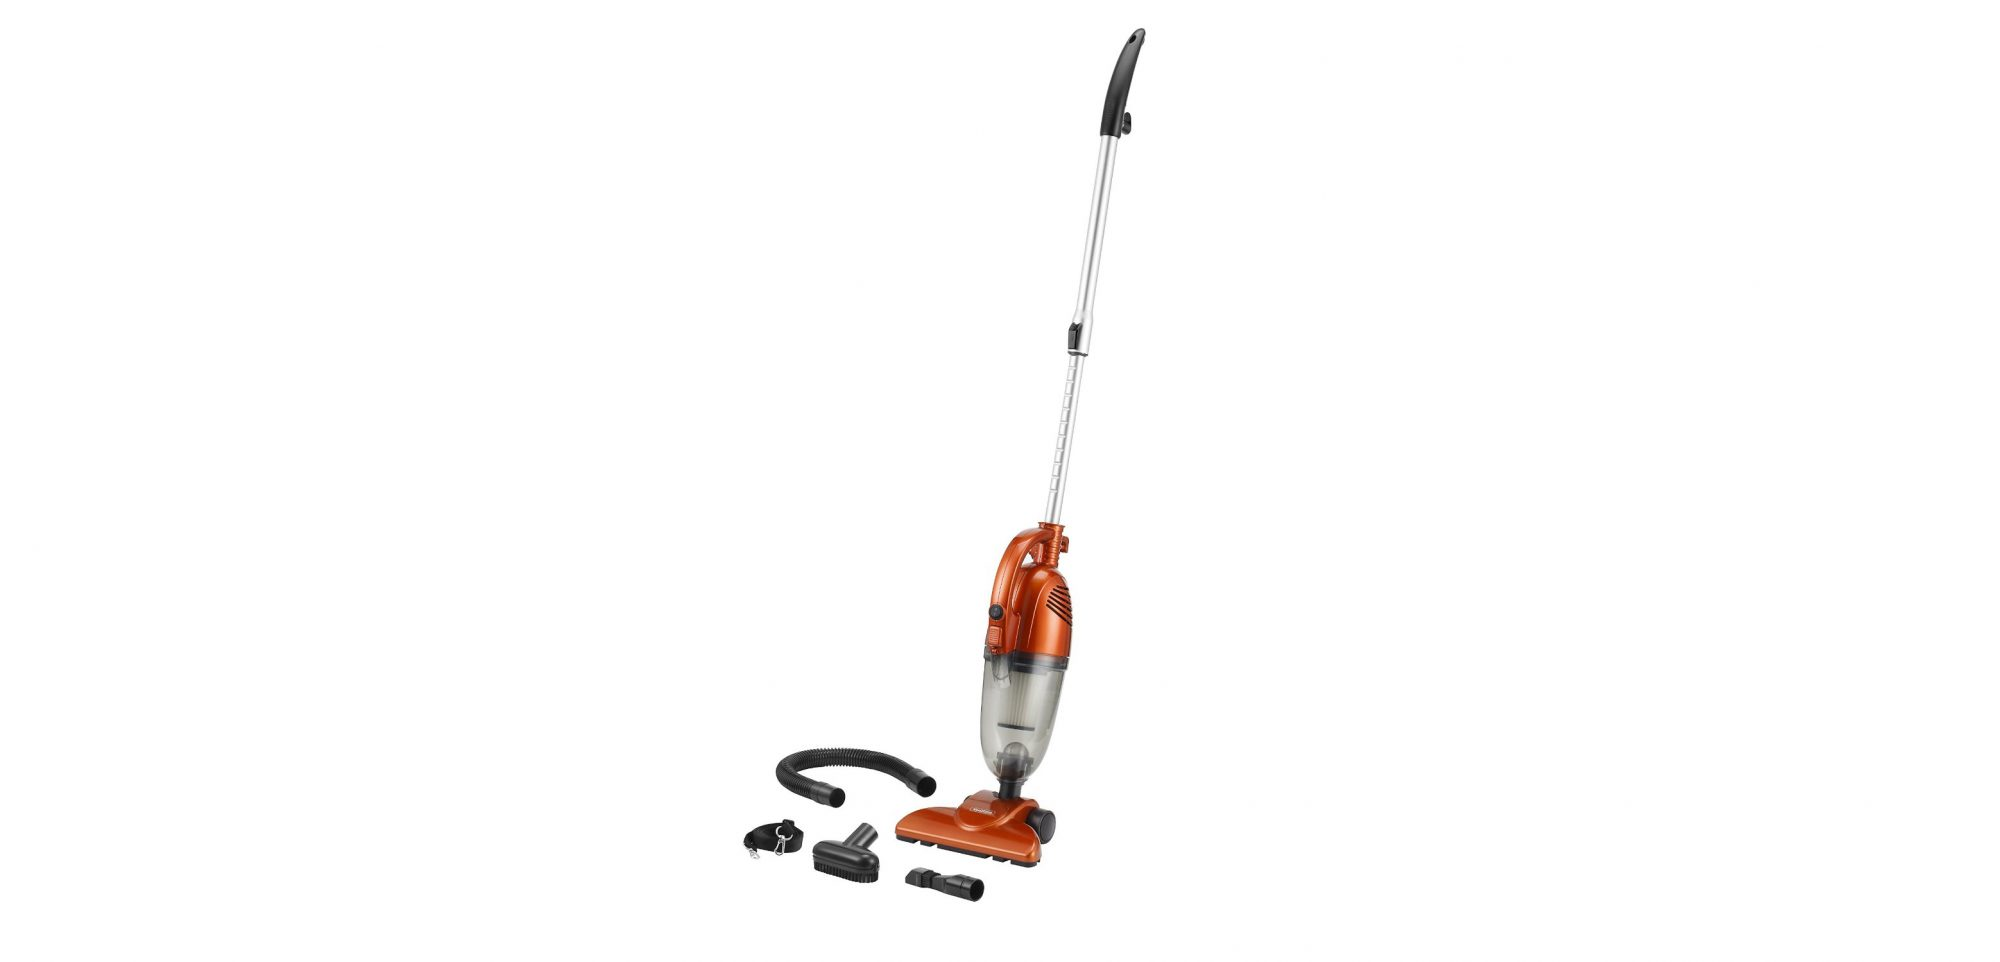 VonHaus 600W 2-in-1 Corded Upright Stick and Handheld Vacuum Cleaner with HEPA and Sponge Filtration